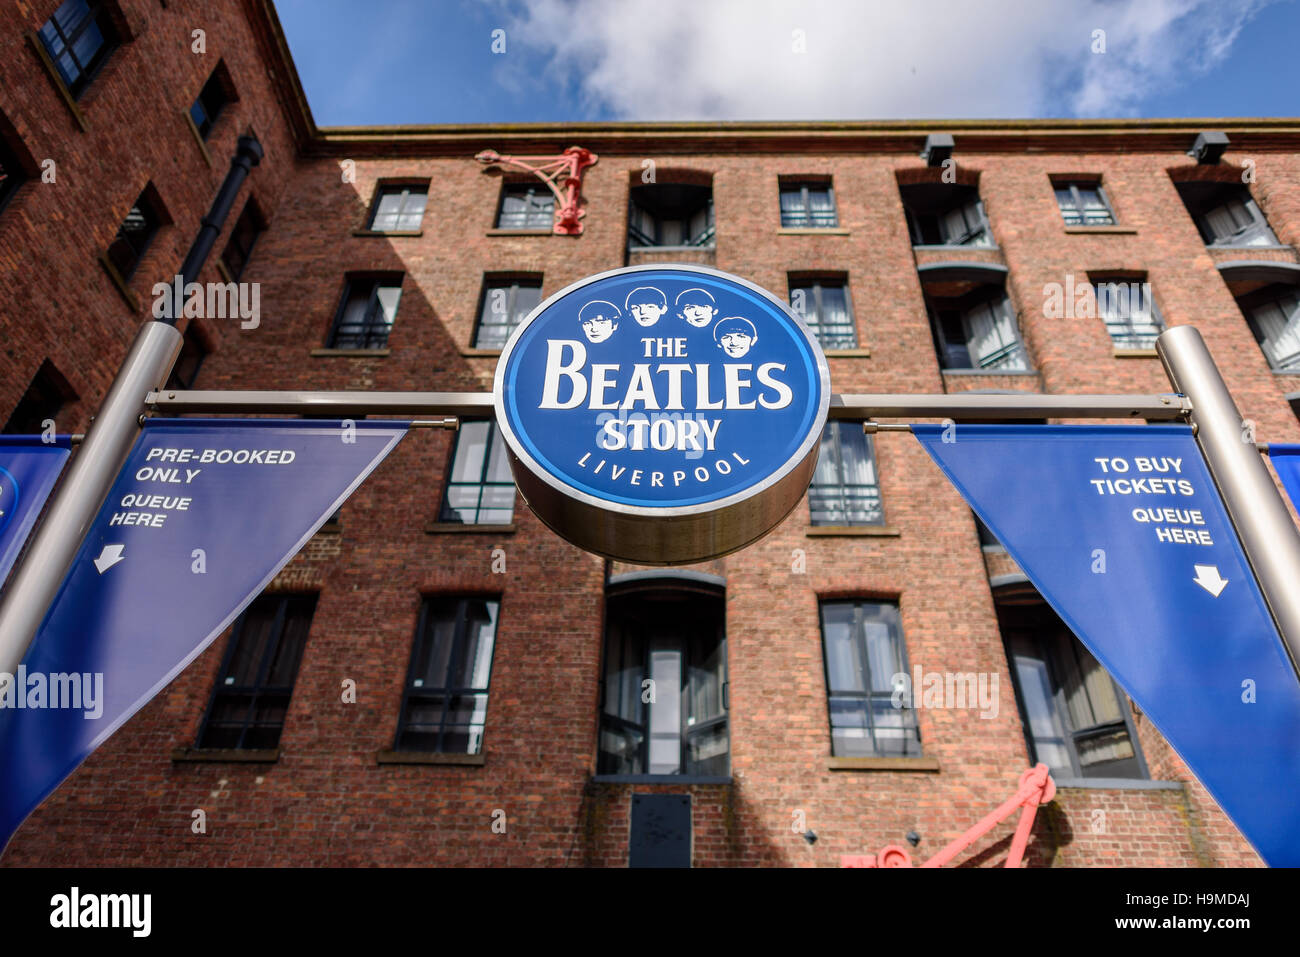 The sign for 'The Beatles Story' Exhibition at the Albert Dock in Liverpool. *EDITORIAL* - Stock Image